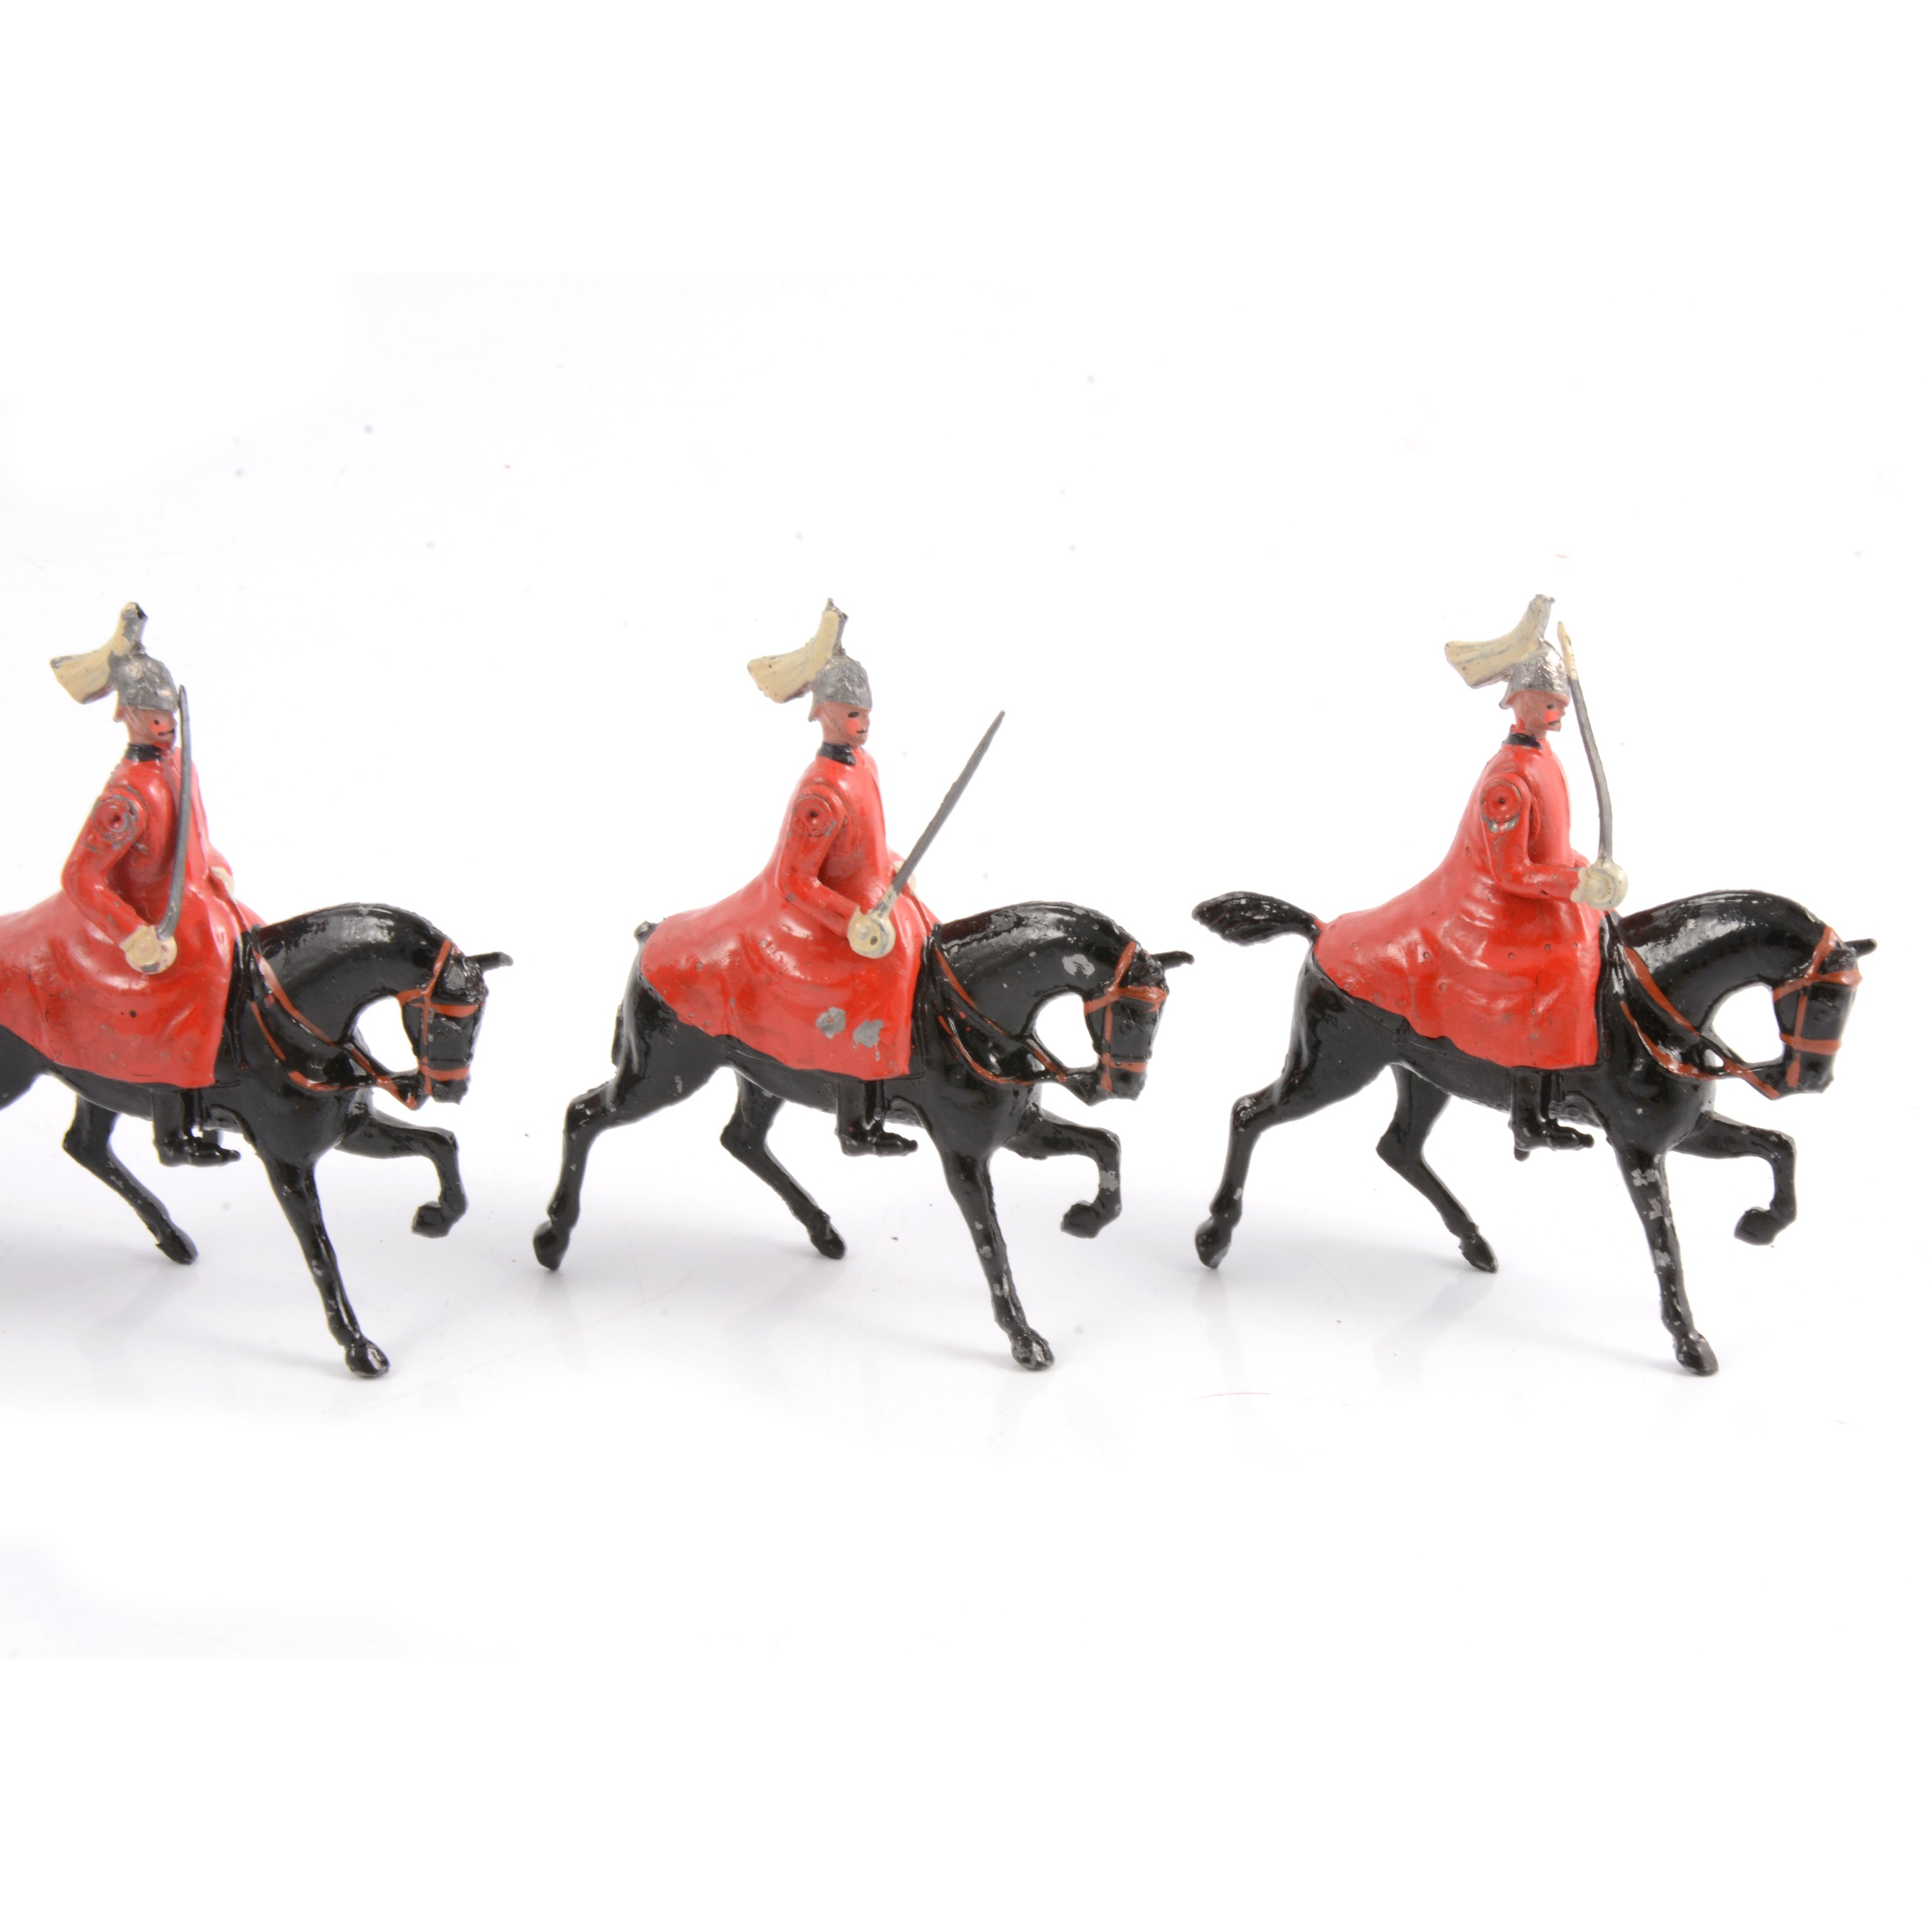 Britains lead-painted figures, Life Guards in winter coats set no.400 - Image 3 of 3